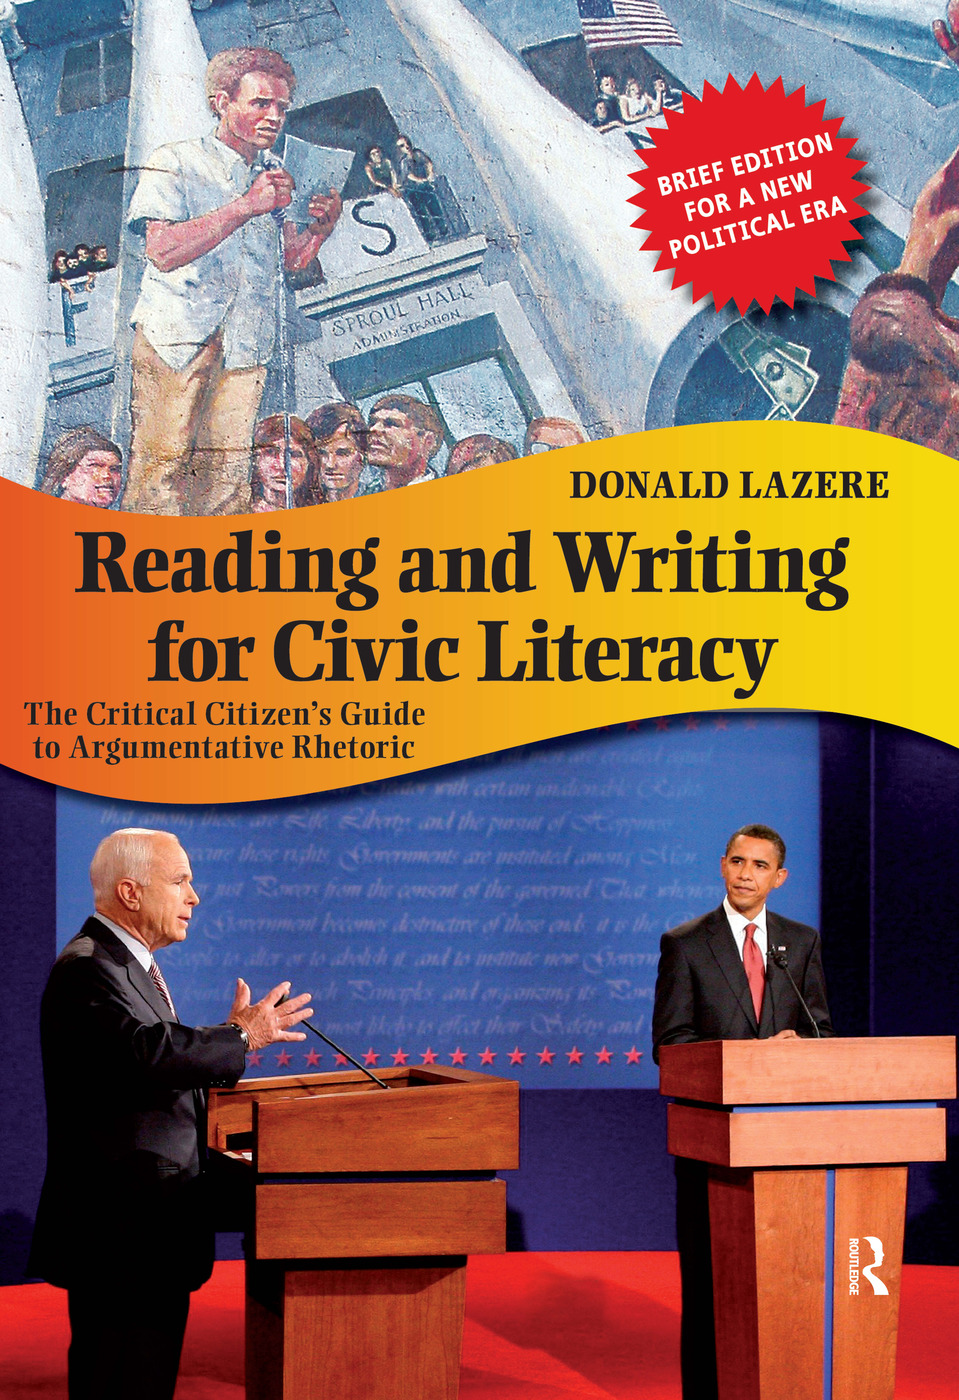 Reading and Writing for Civic Literacy: The Critical Citizen's Guide to Argumentative Rhetoric book cover